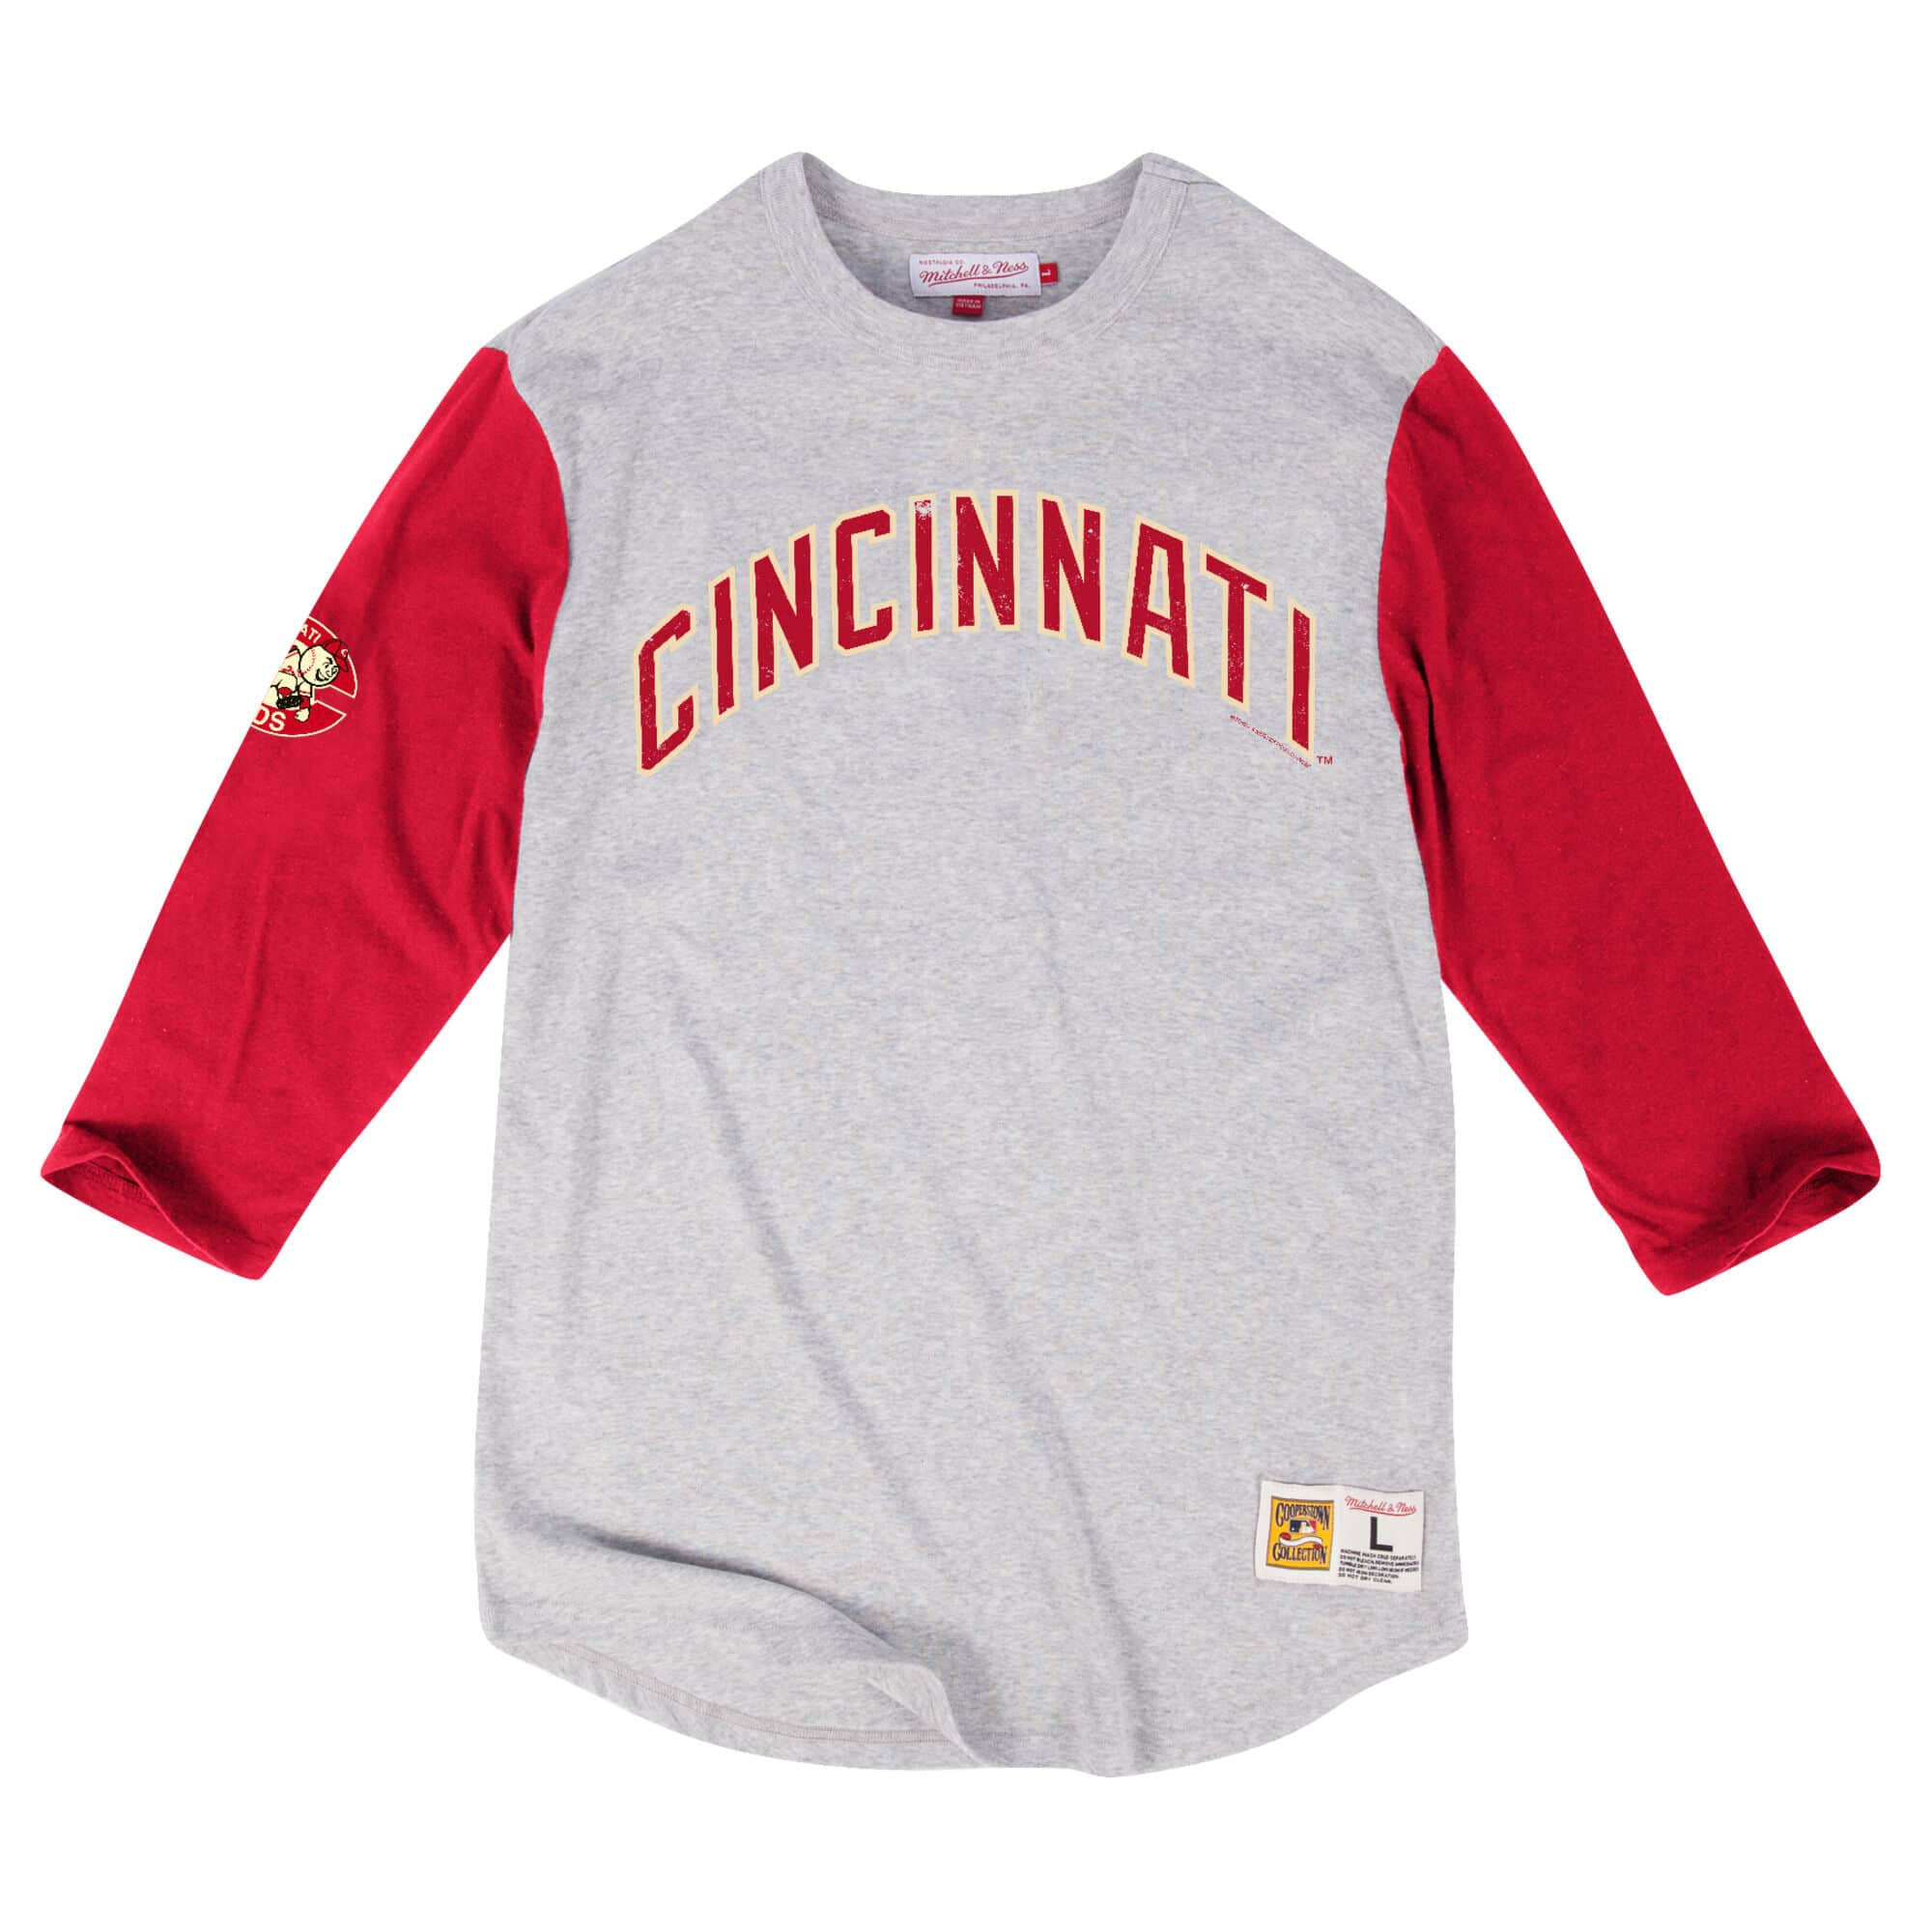 Scoring Position 3/4 Sleeve Cincinnati Reds